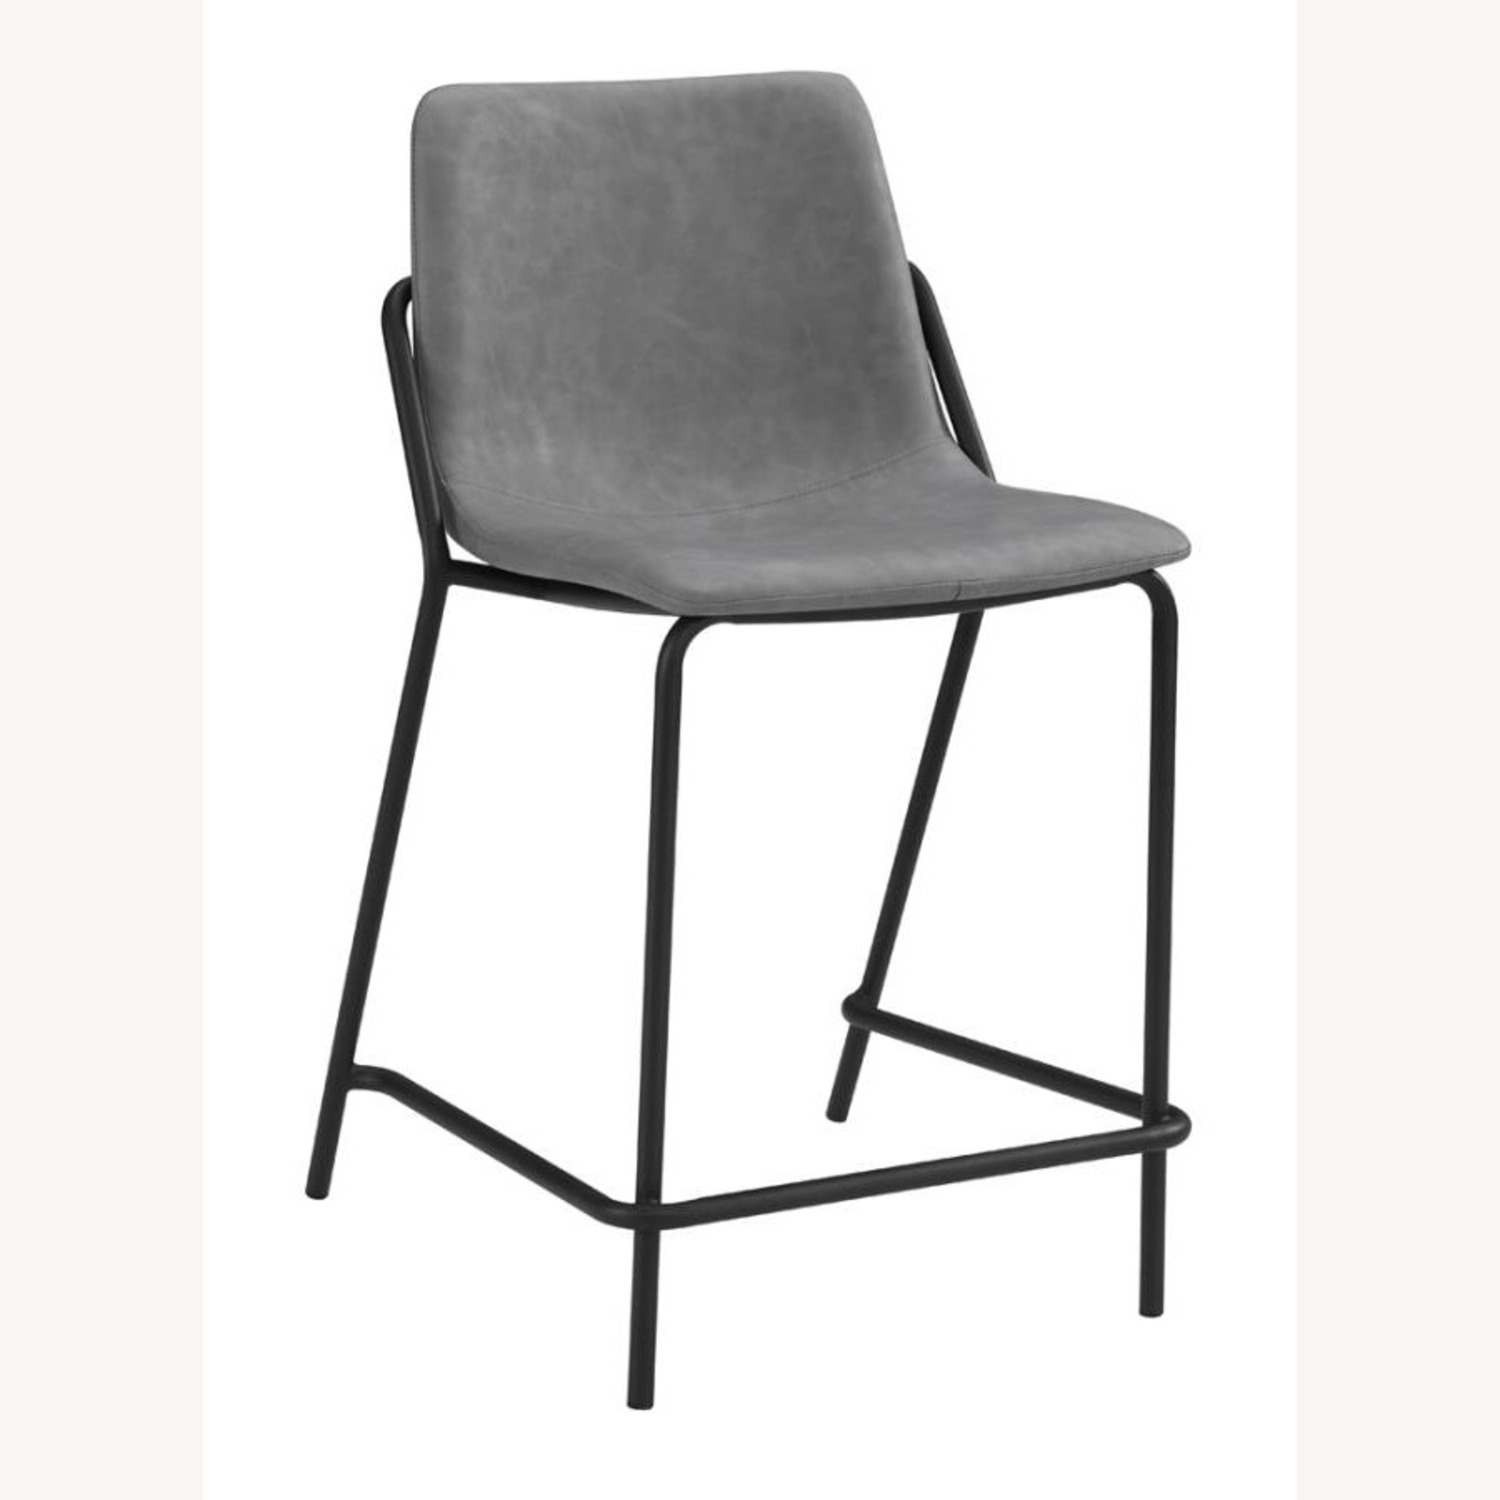 Counter Stool In Grey Leather & Black Metal Finish - image-0